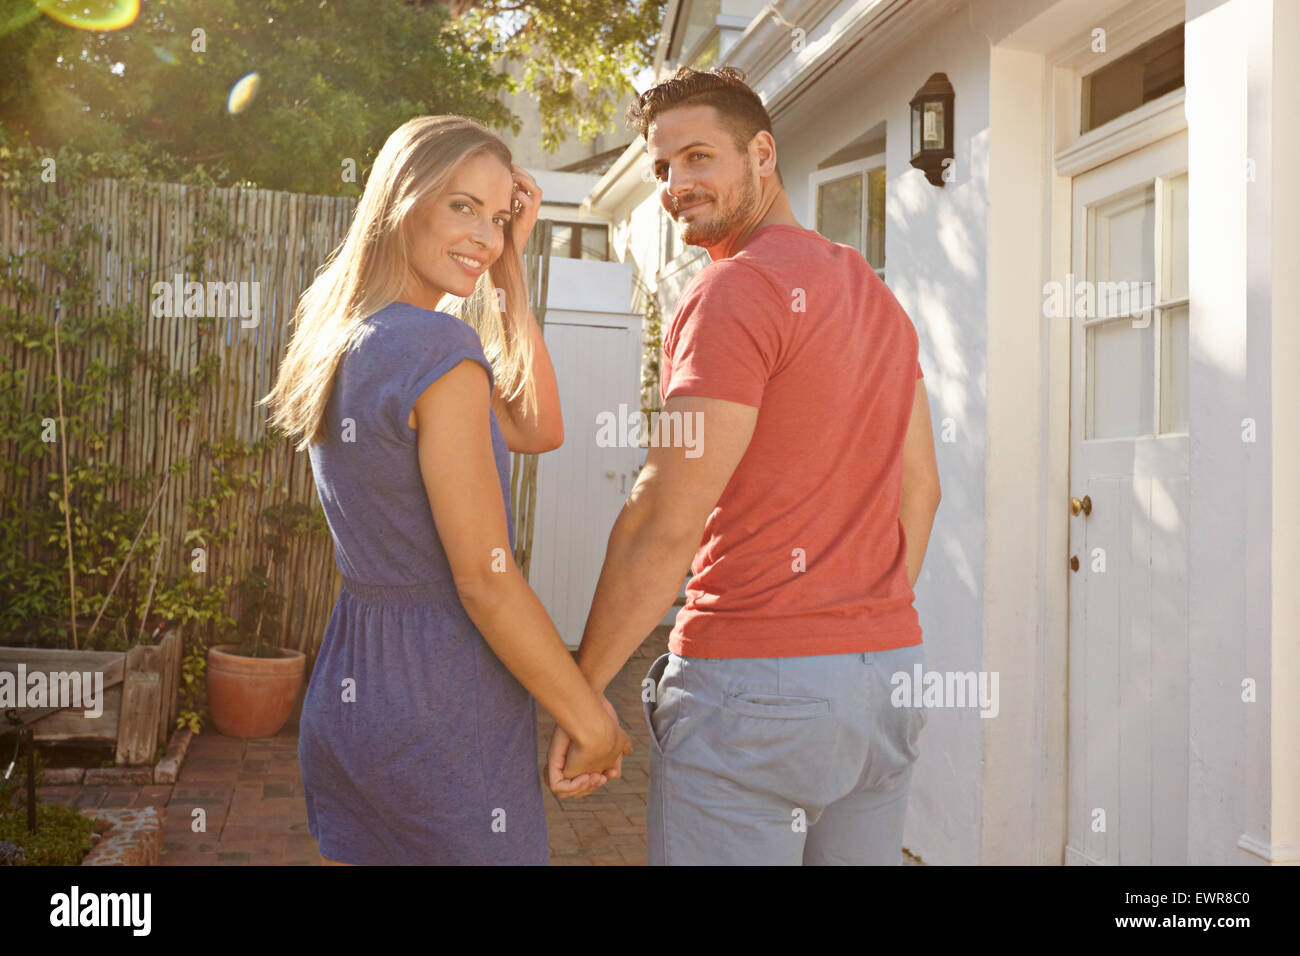 Outdoor shot of young caucasian couple walking to their house holding hands, both looking back over shoulder and - Stock Image